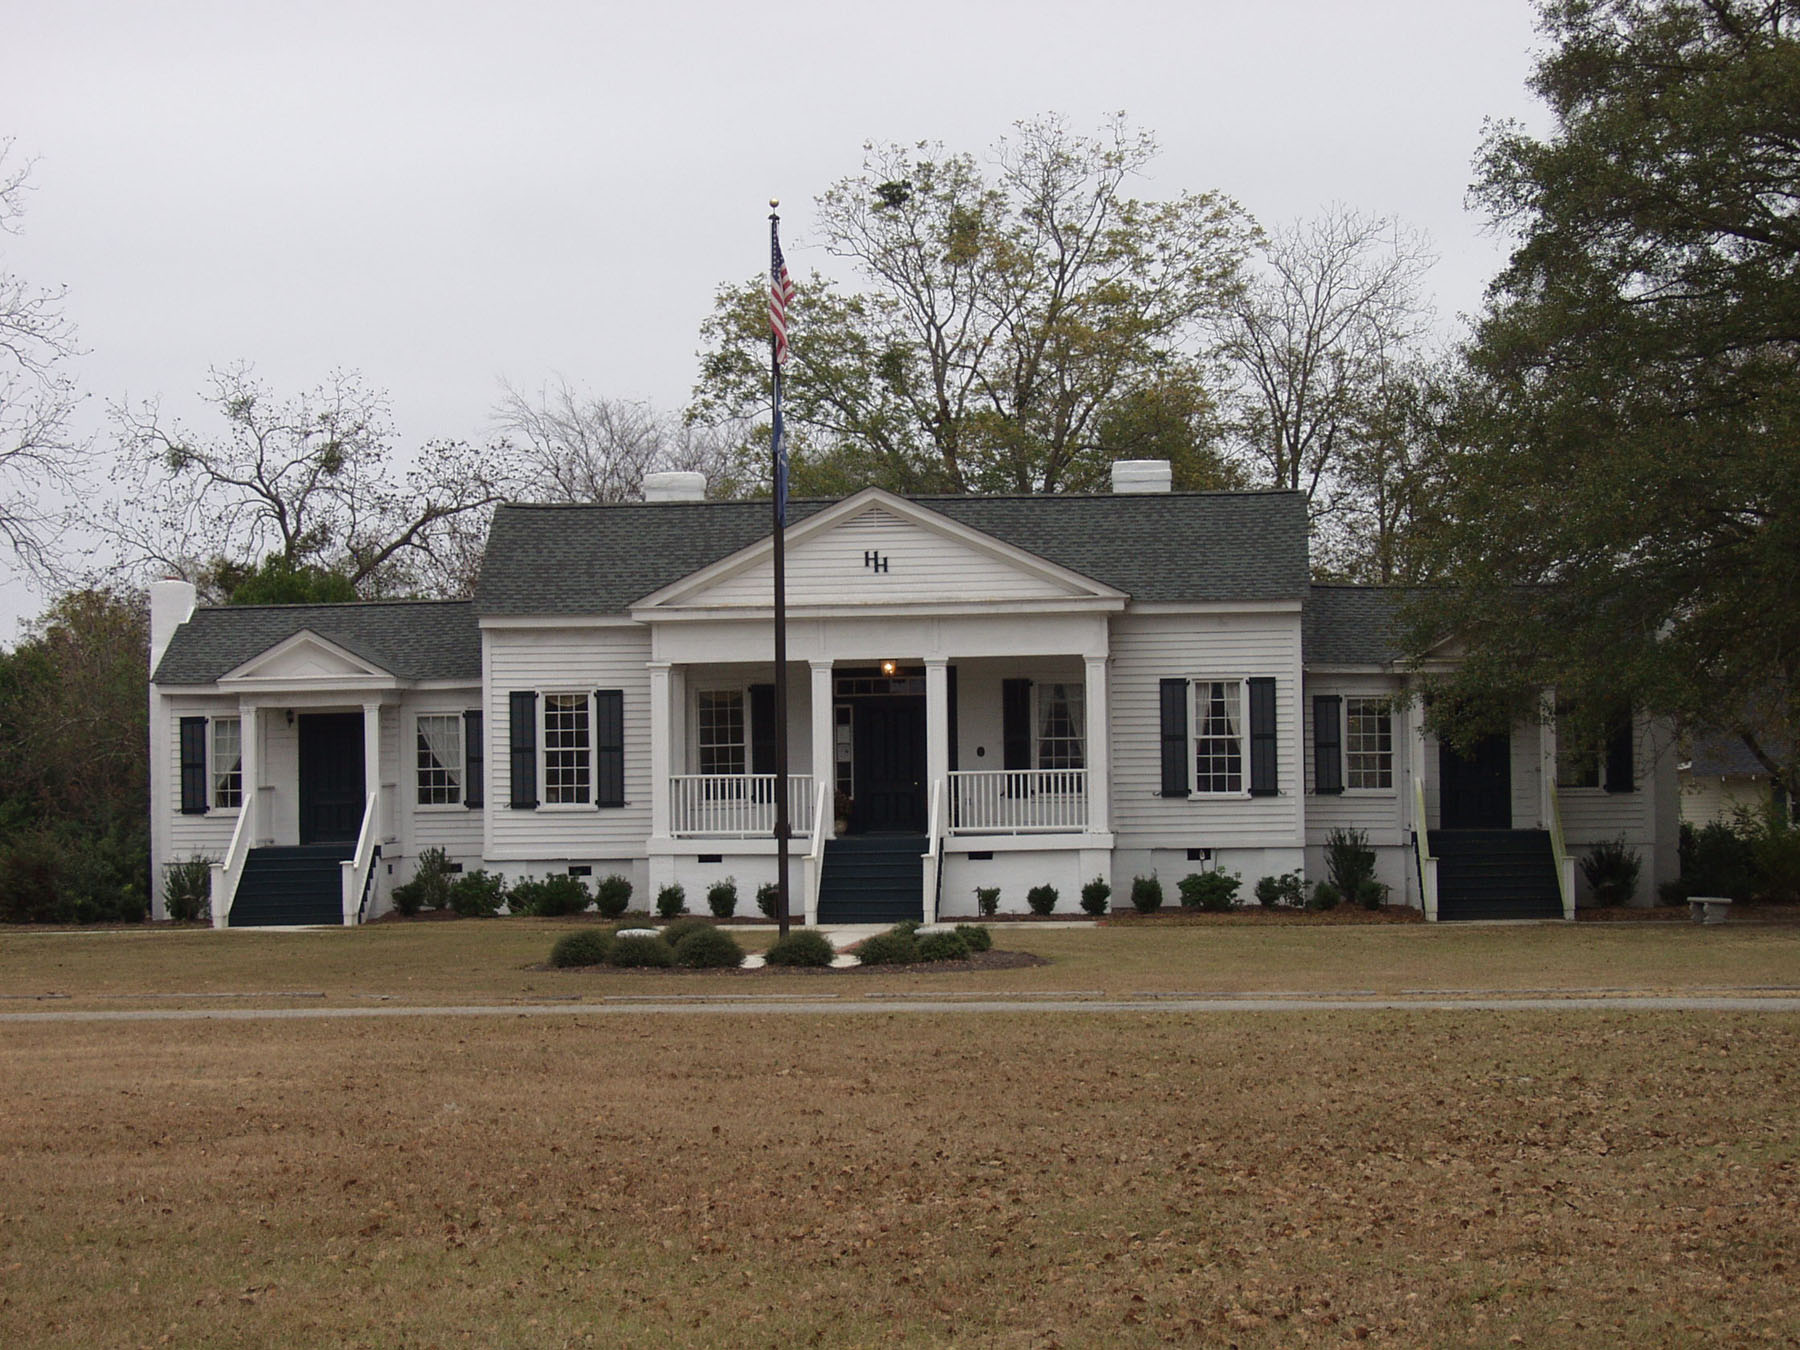 Historic Hoffman House/Town Hall built in 1855.  Photo by Jim McLean